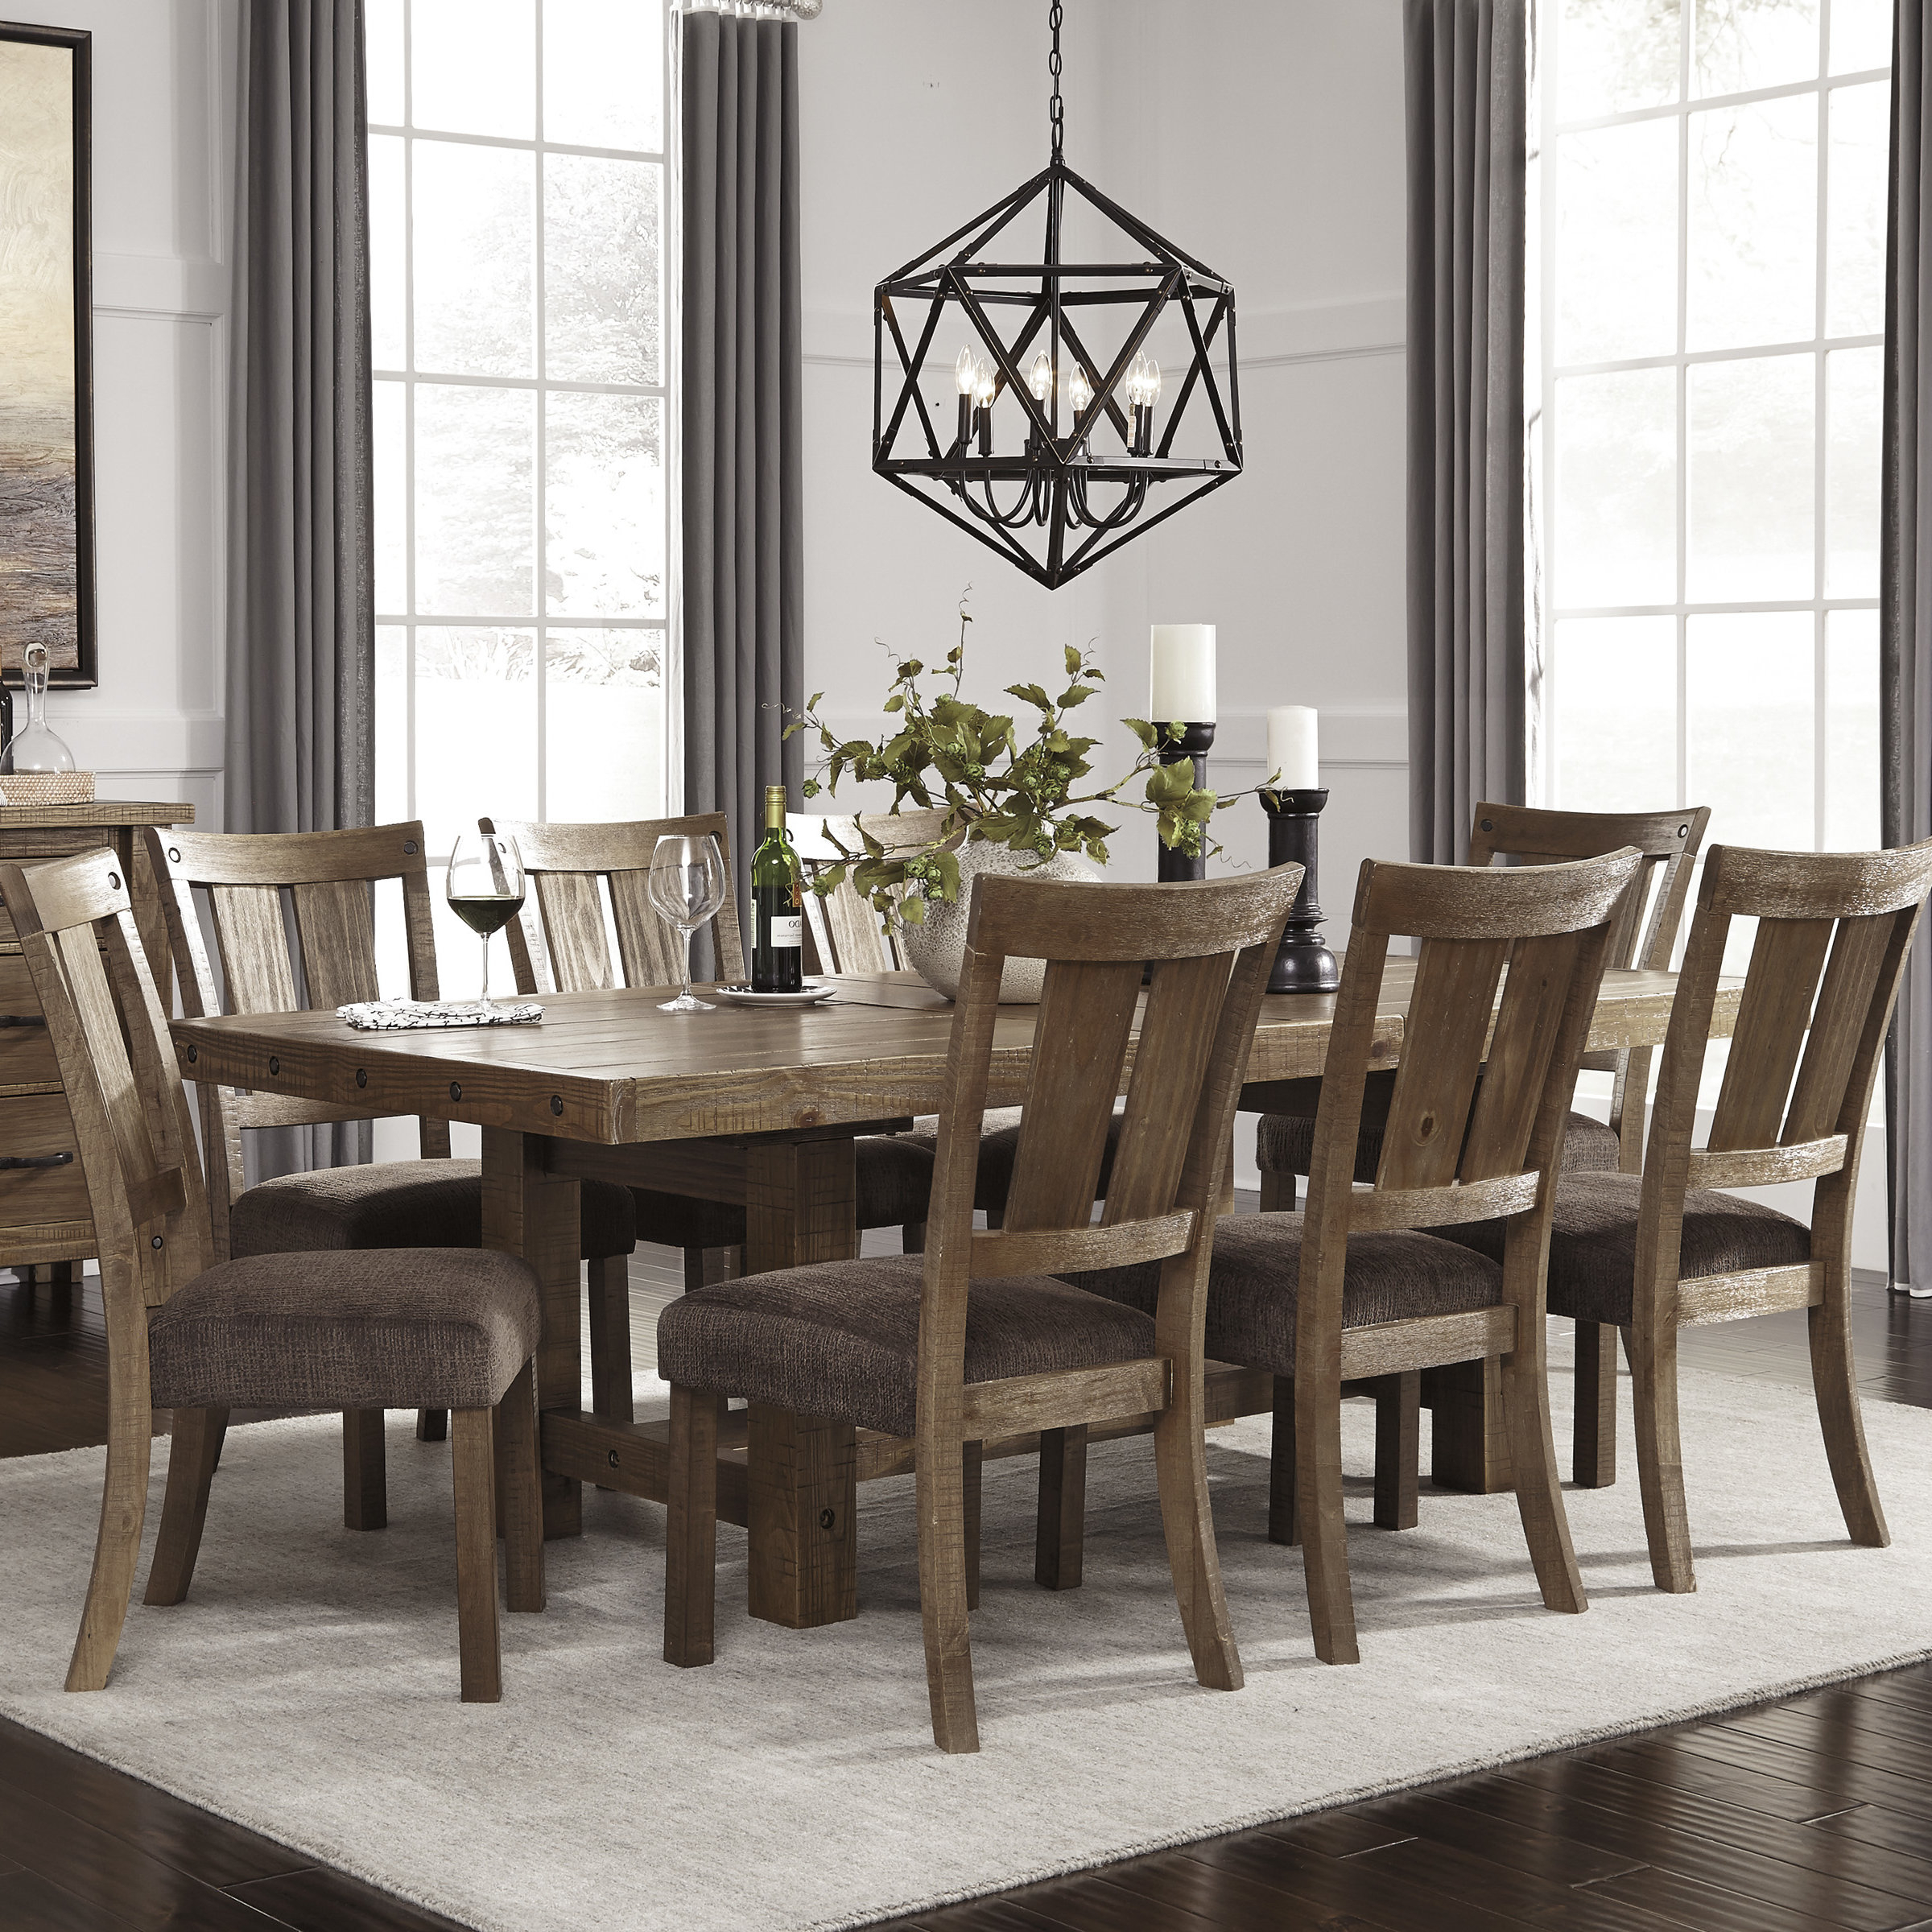 Sheetz 3 Piece Counter Height Dining Sets Within Most Recently Released Kitchen & Dining Room Sets You'll Love (View 23 of 25)